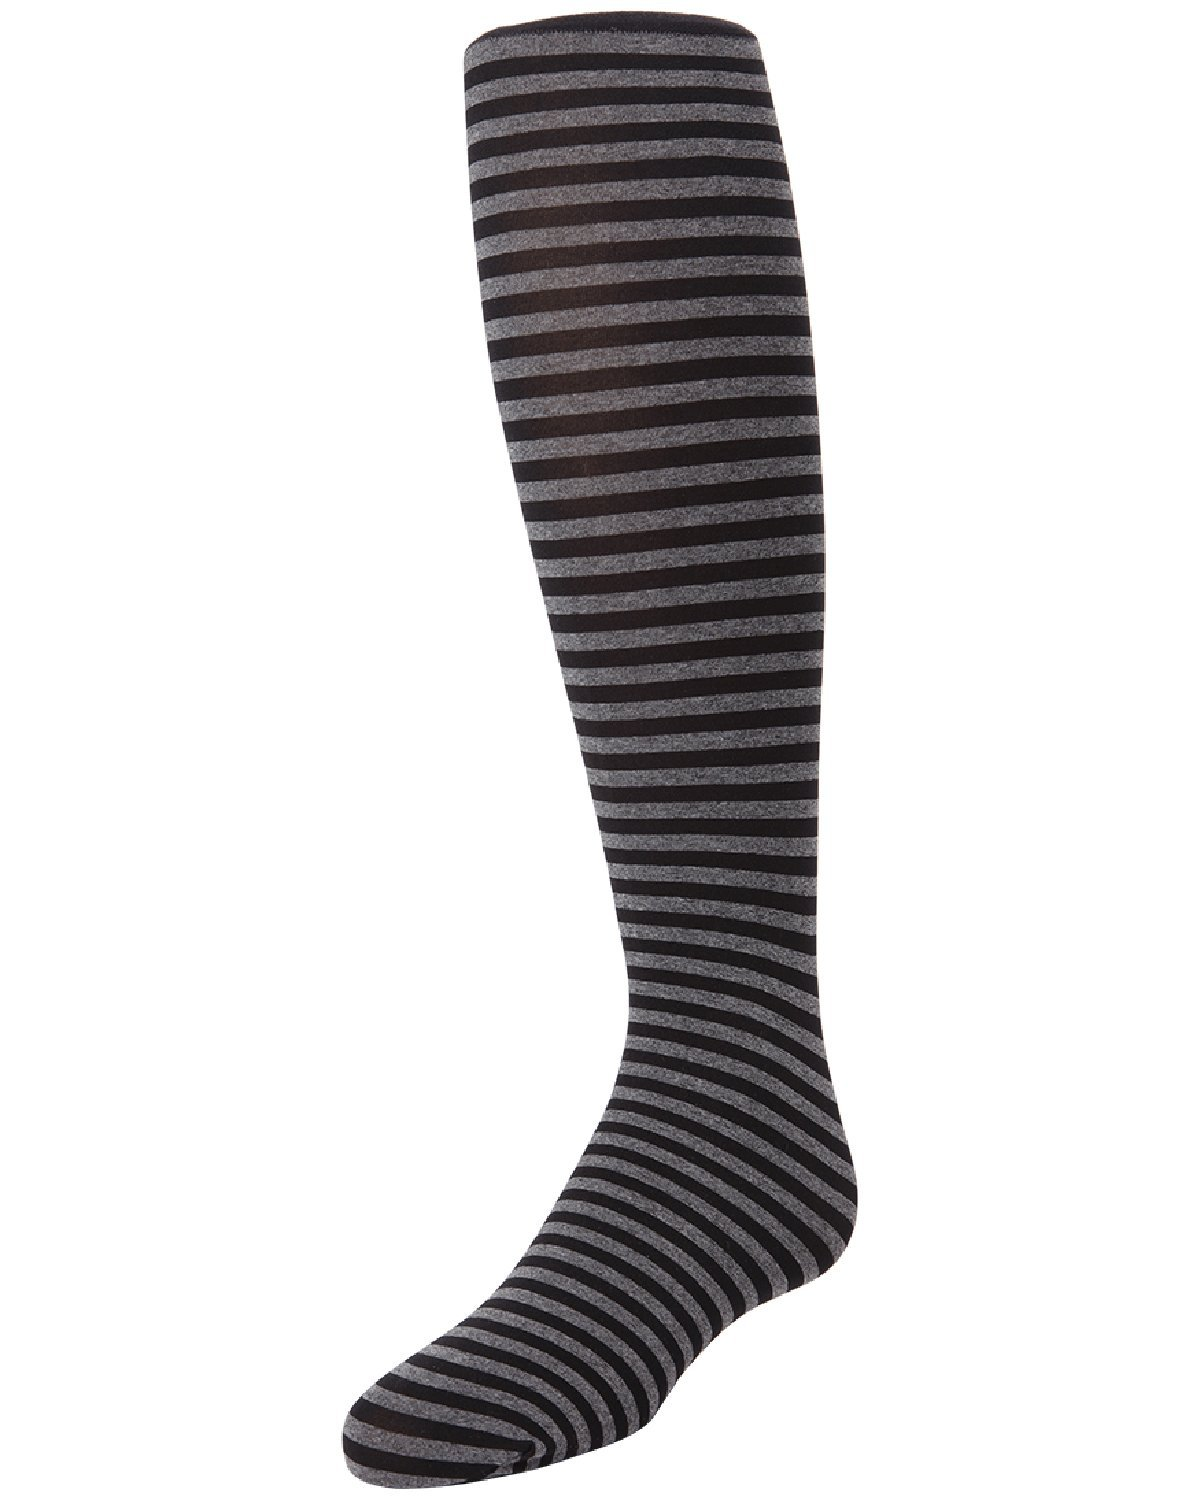 MeMoi Rows On Rows Girls Striped Tights | Girls Heathered Tights by MeMoi 12-Oct / Black MK 746